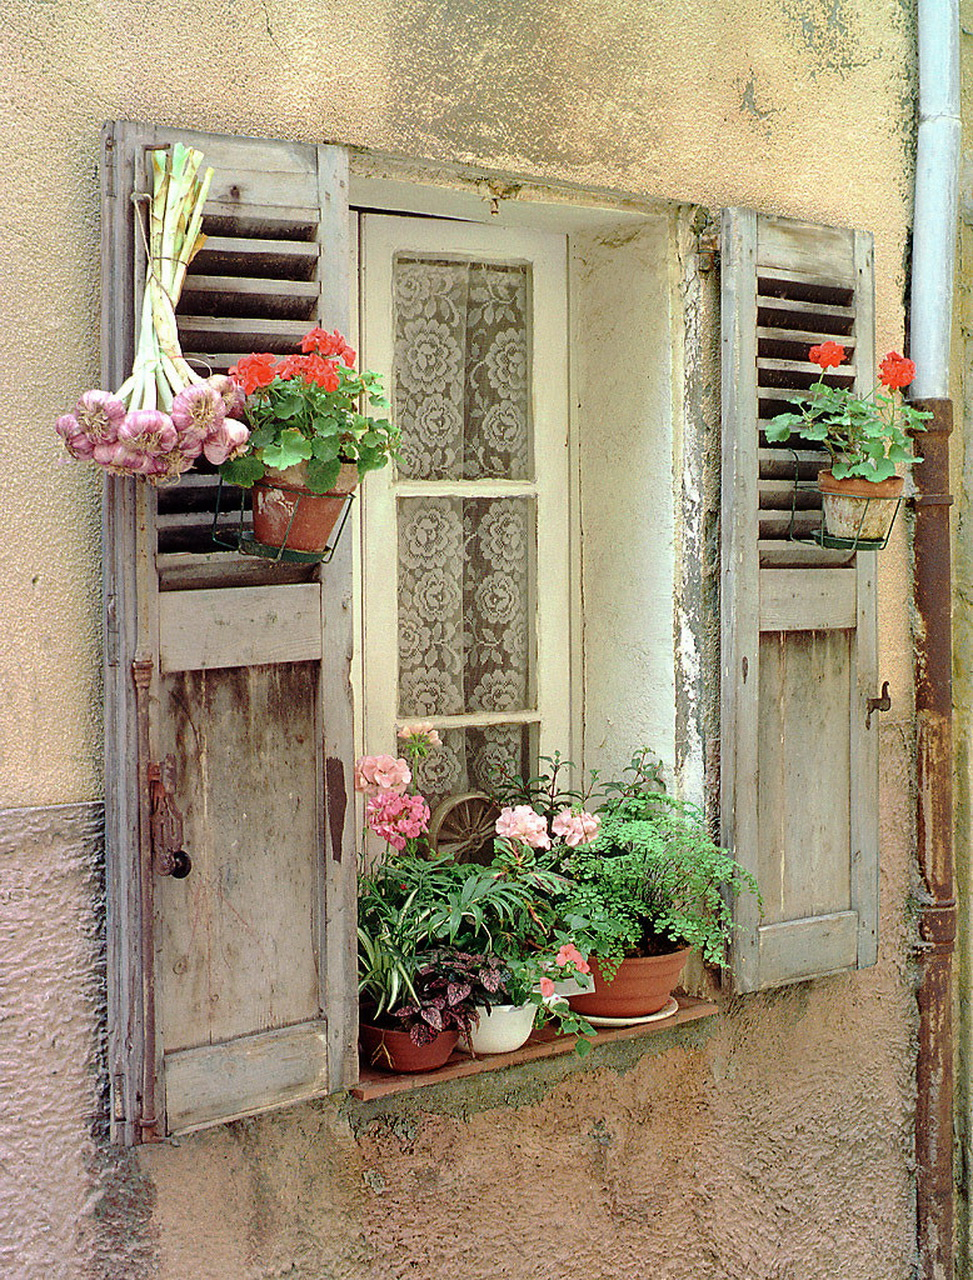 Pencere resmi doors, windows and balconies with flowers pint.